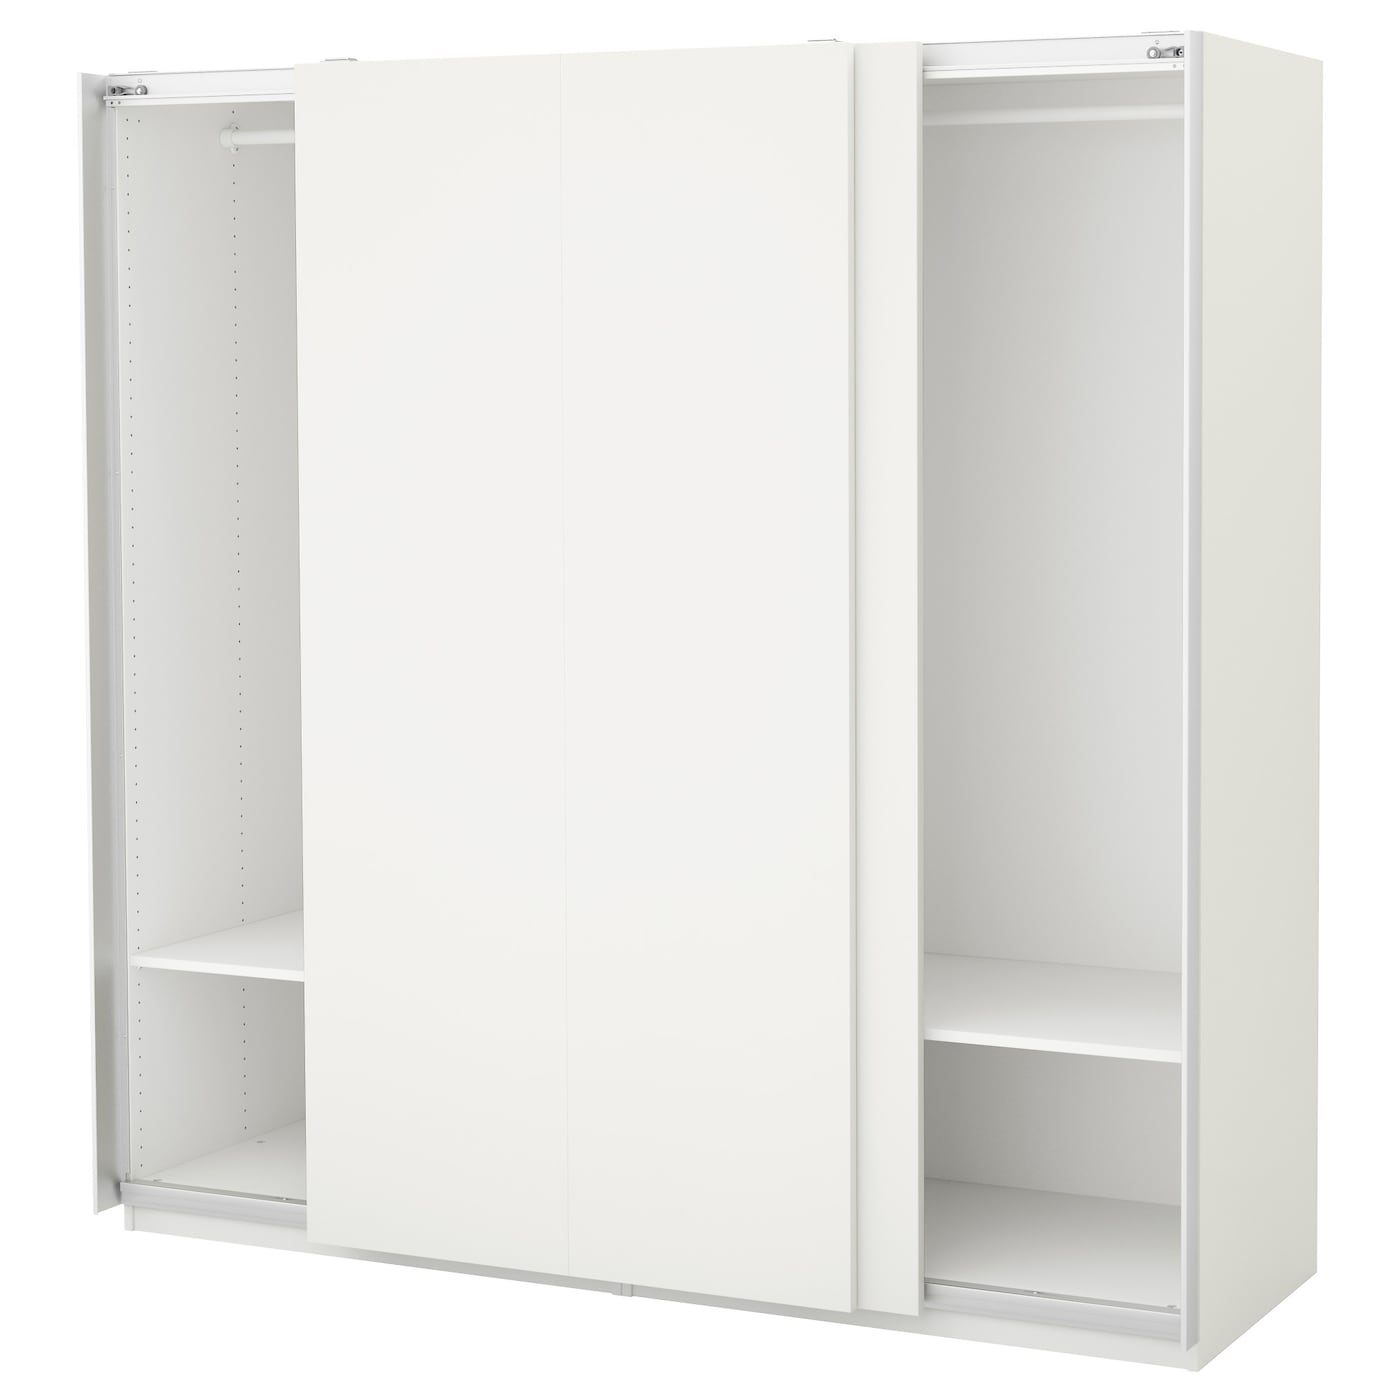 pax wardrobe white hasvik white 200 x 66 x 201 cm ikea. Black Bedroom Furniture Sets. Home Design Ideas